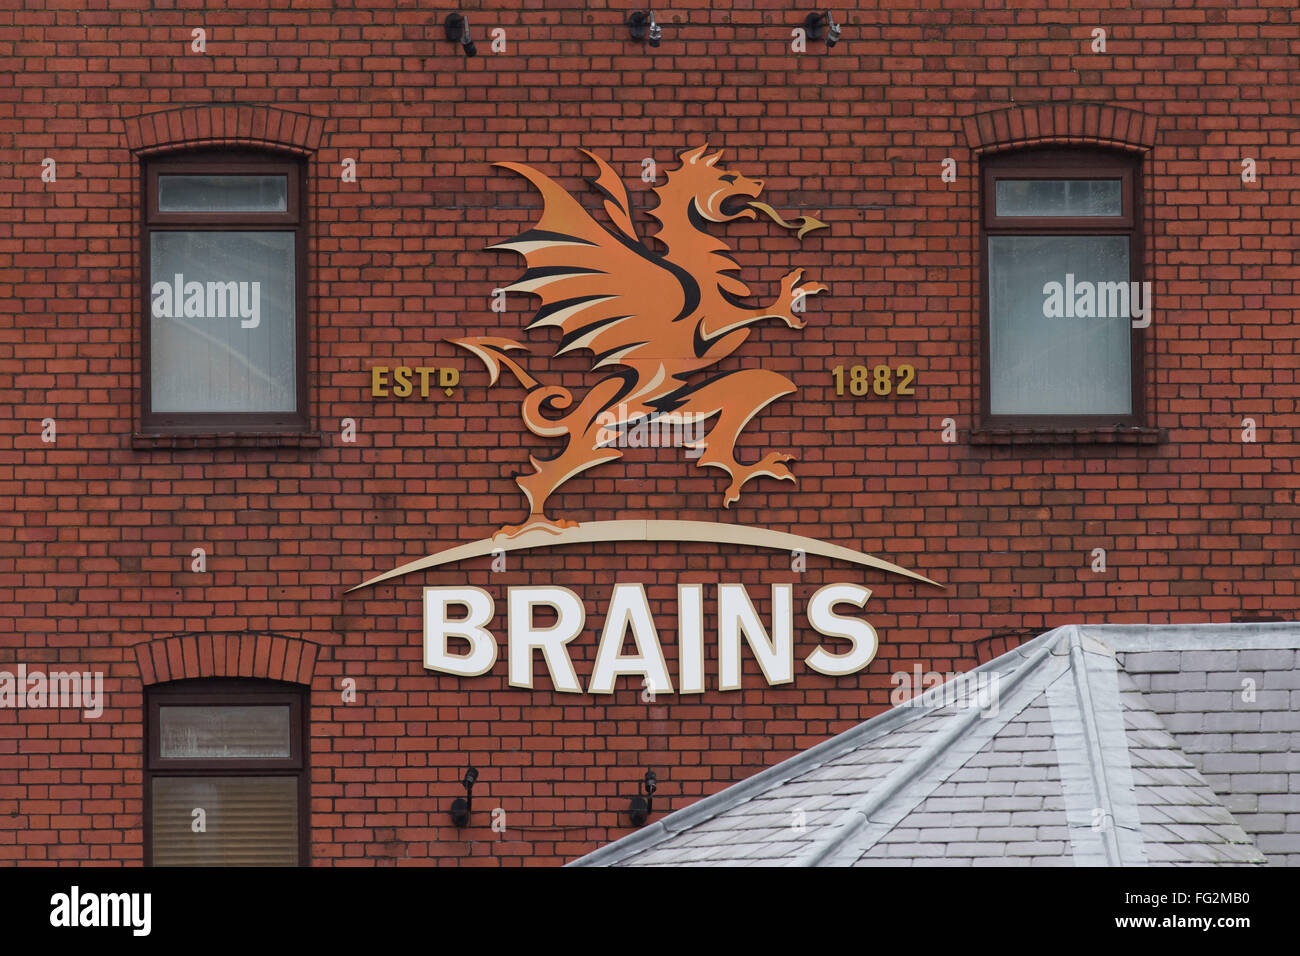 SA Brains Brewery in Cardiff, South Wales - Stock Image